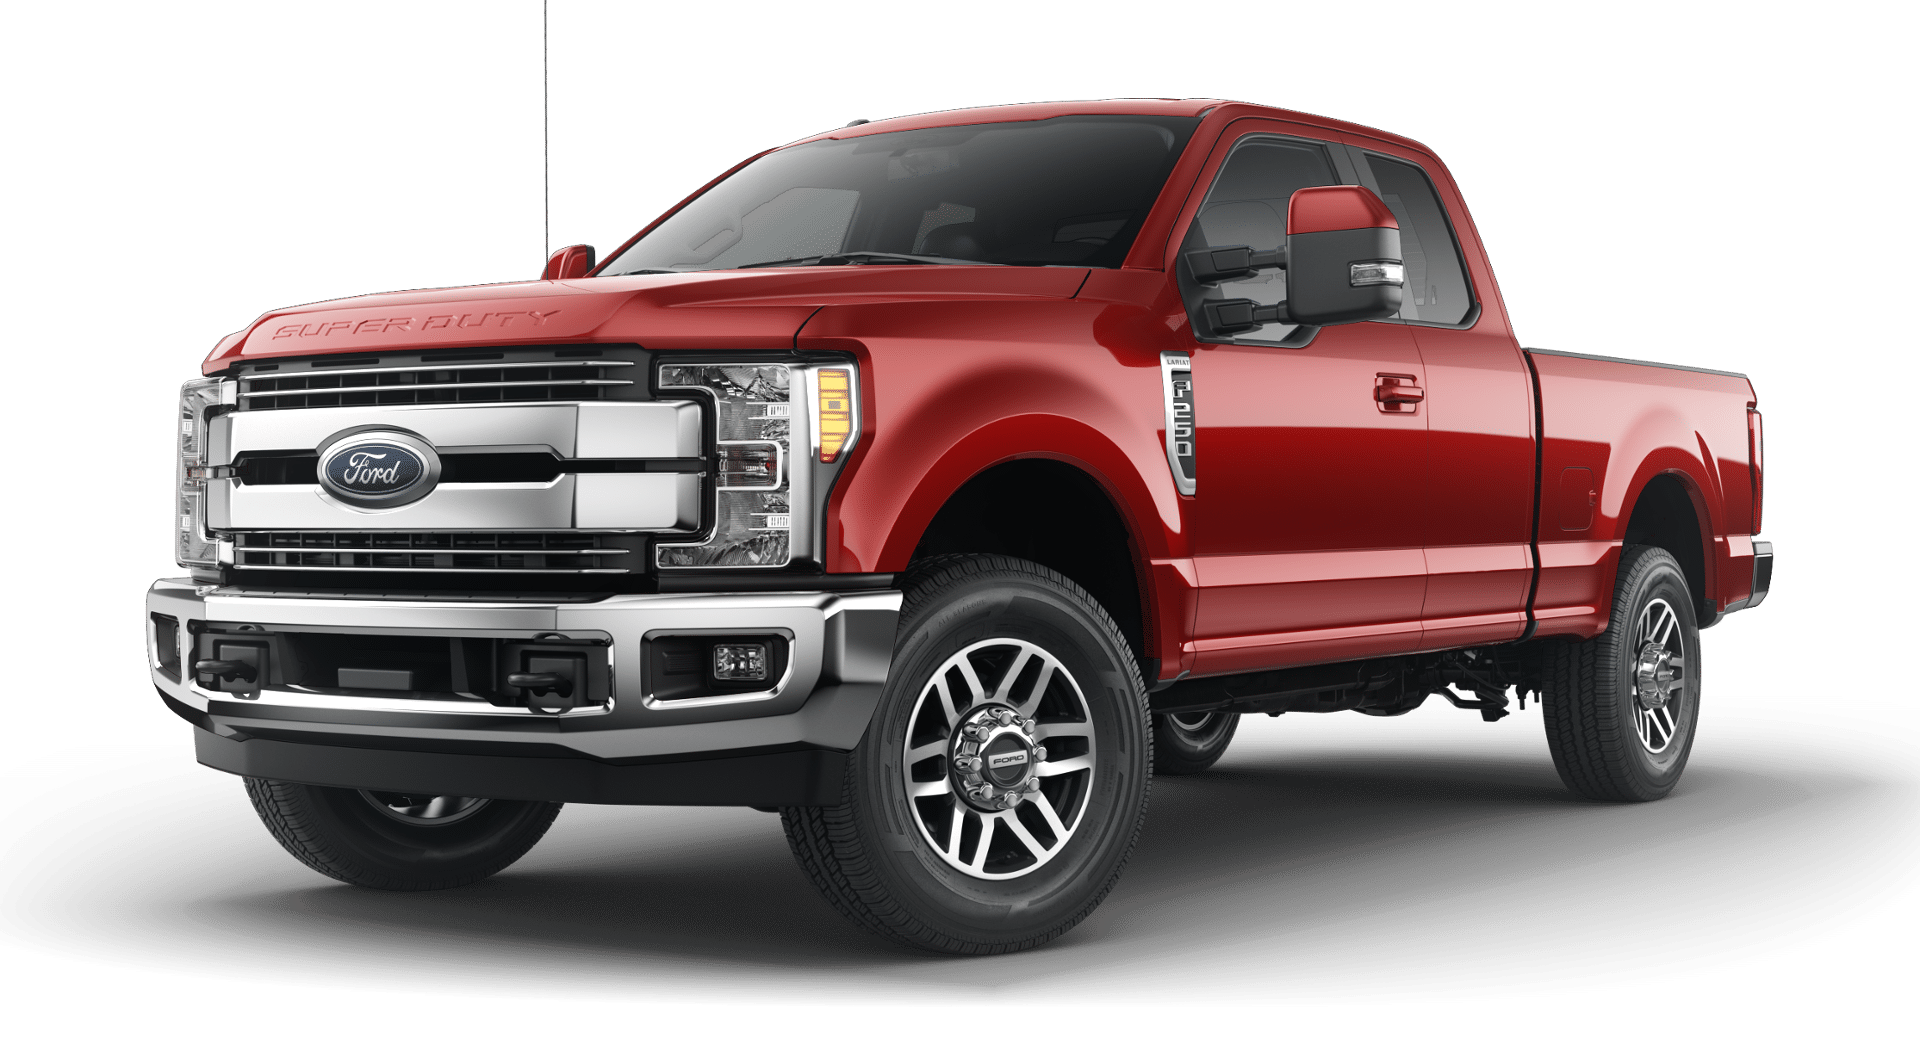 2019 Ford Super Duty Ruby Red